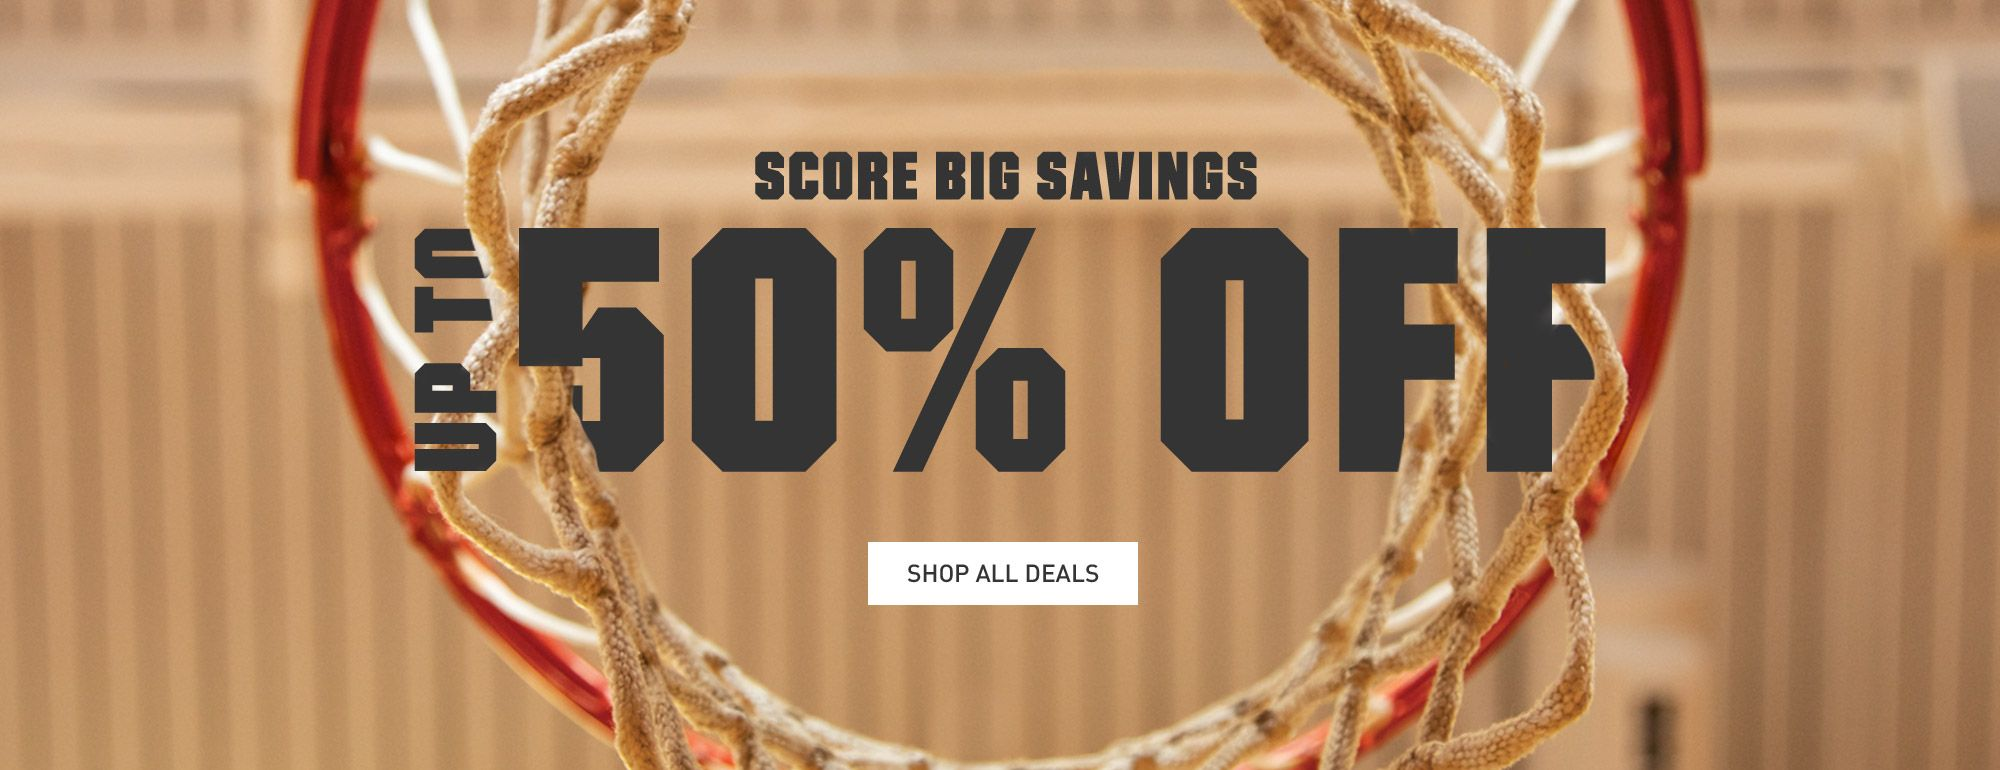 Score Big Savings - Up to 50% Off - Shop All Deals